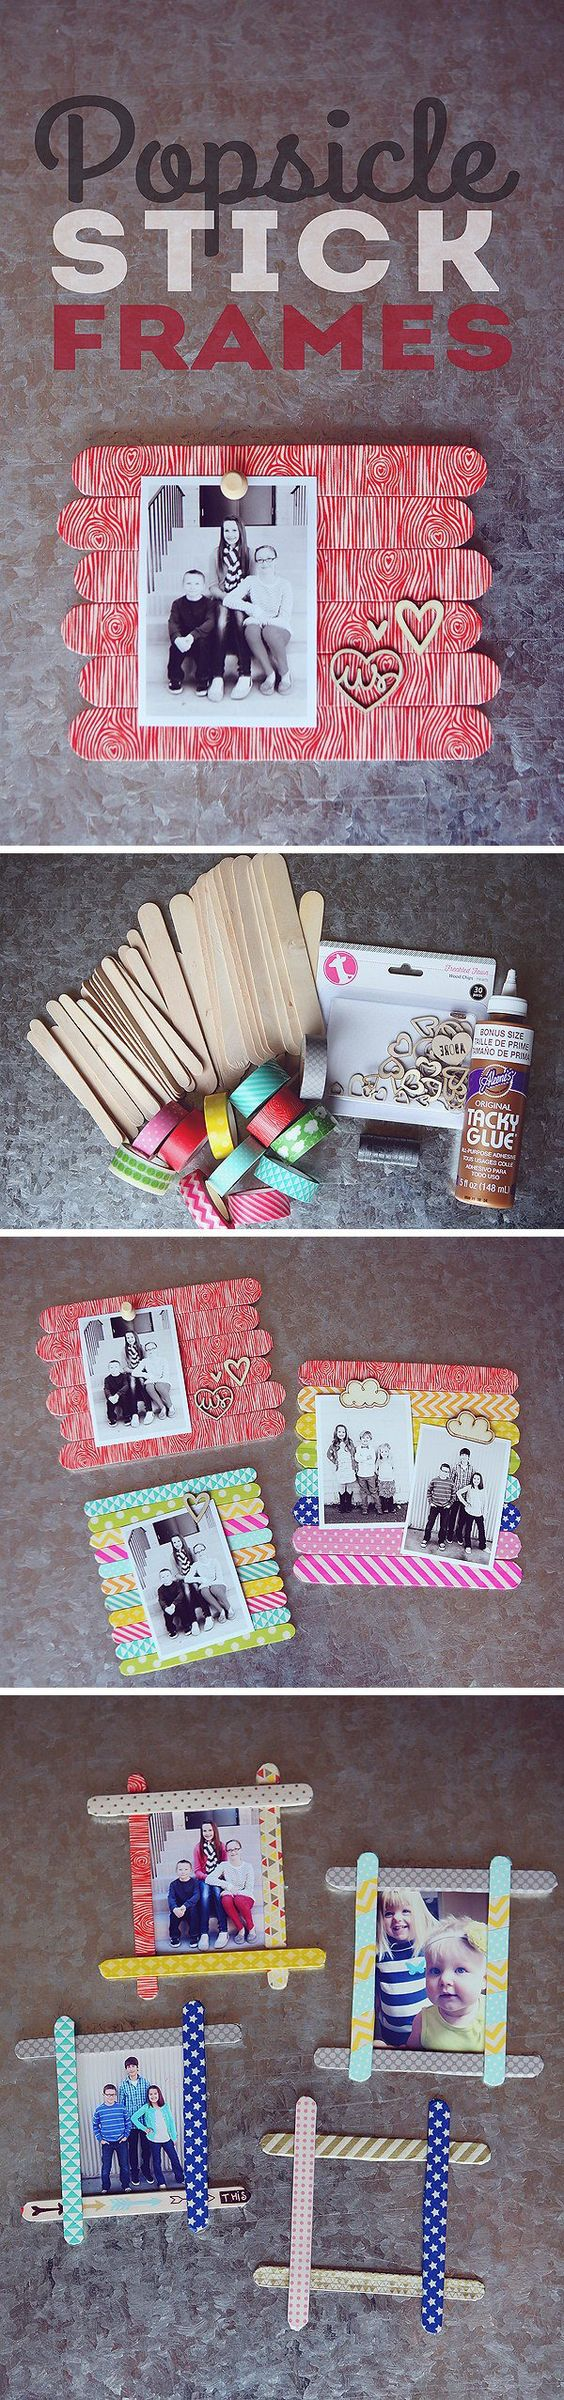 3 DIY Ideas and Tutorials to Recycle Popsicle Sticks for Christmas